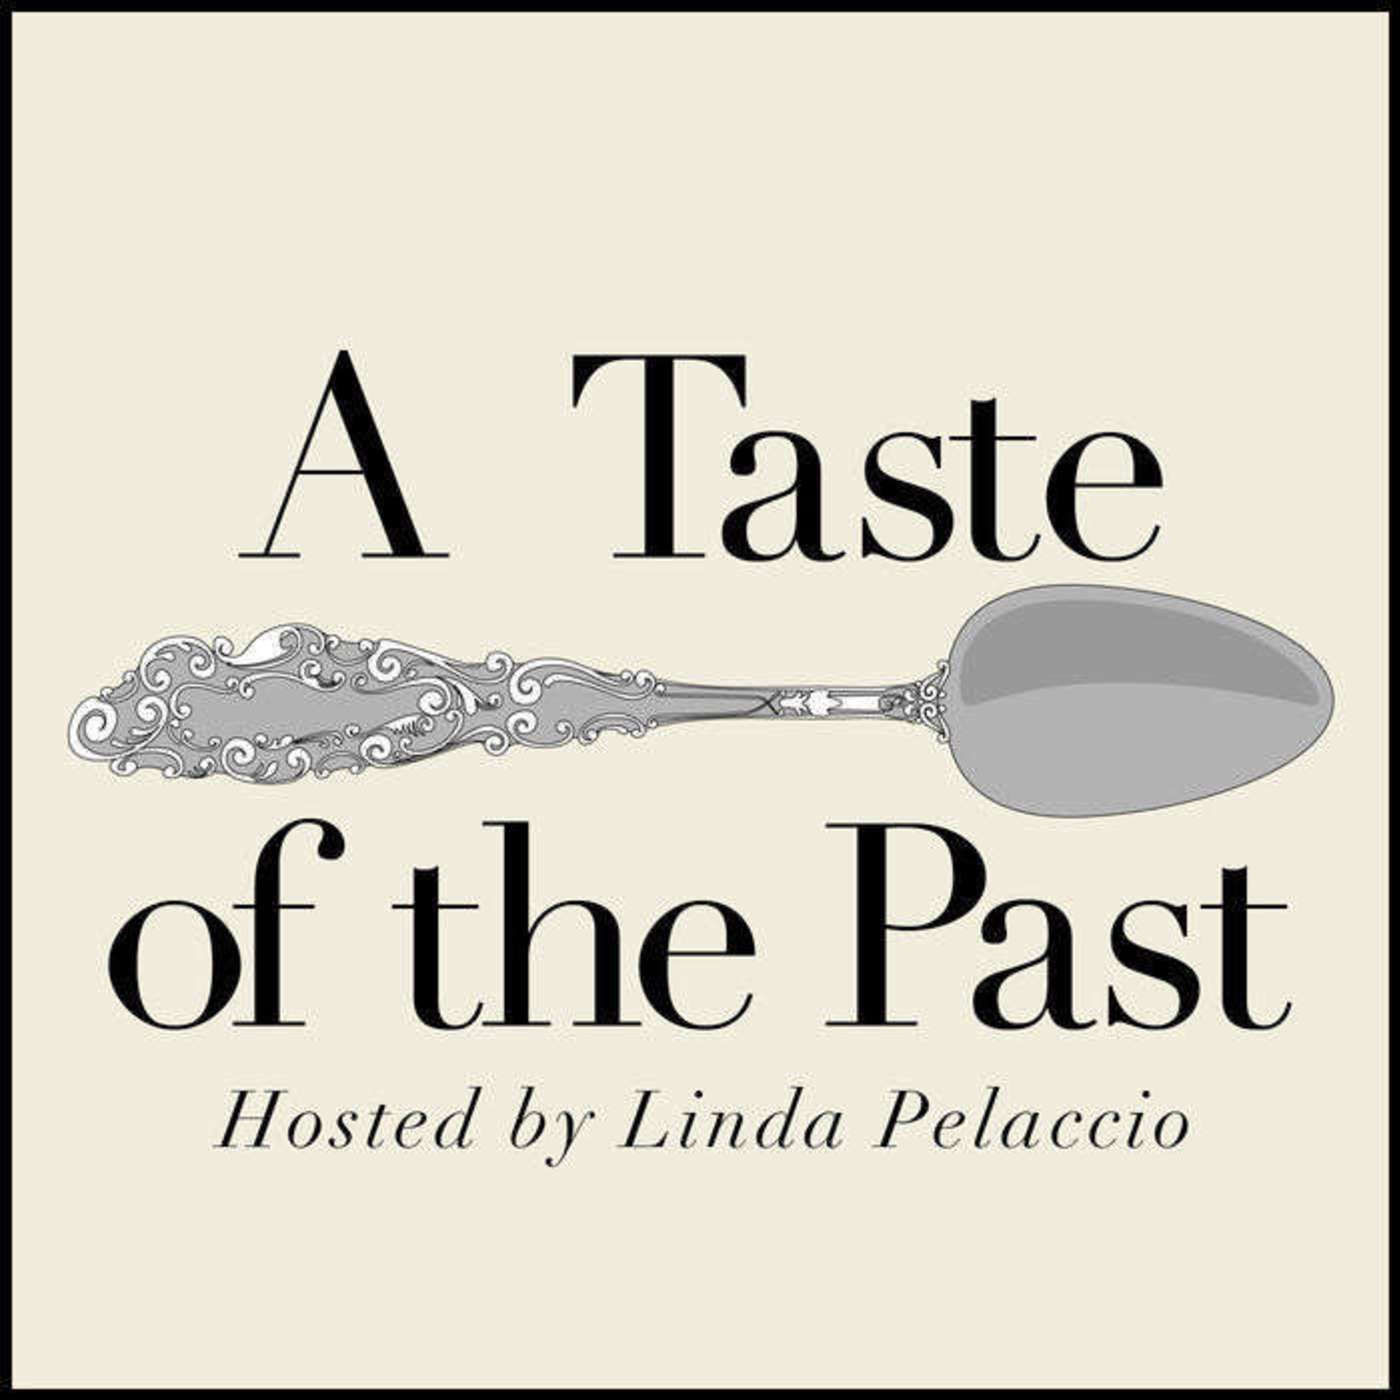 Episode 49: Chinese New Year Food Traditions